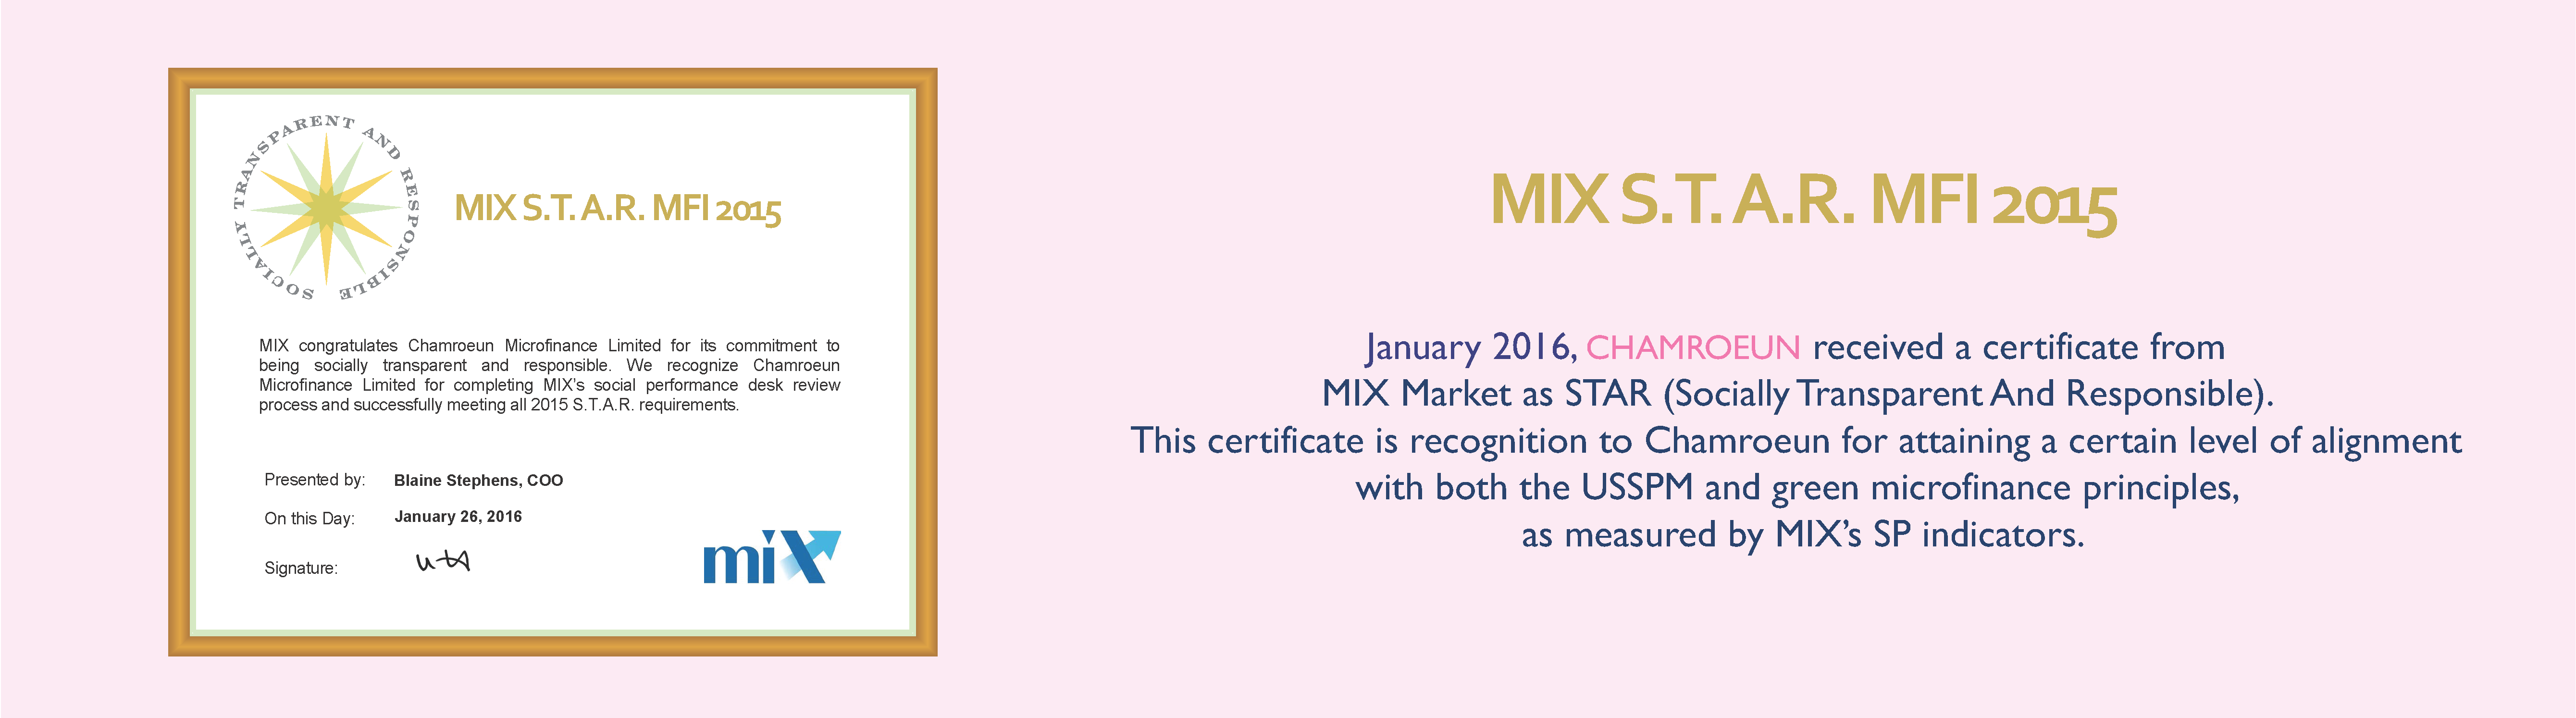 7._MIX_S_.T_.A_.MFI_2015_.png